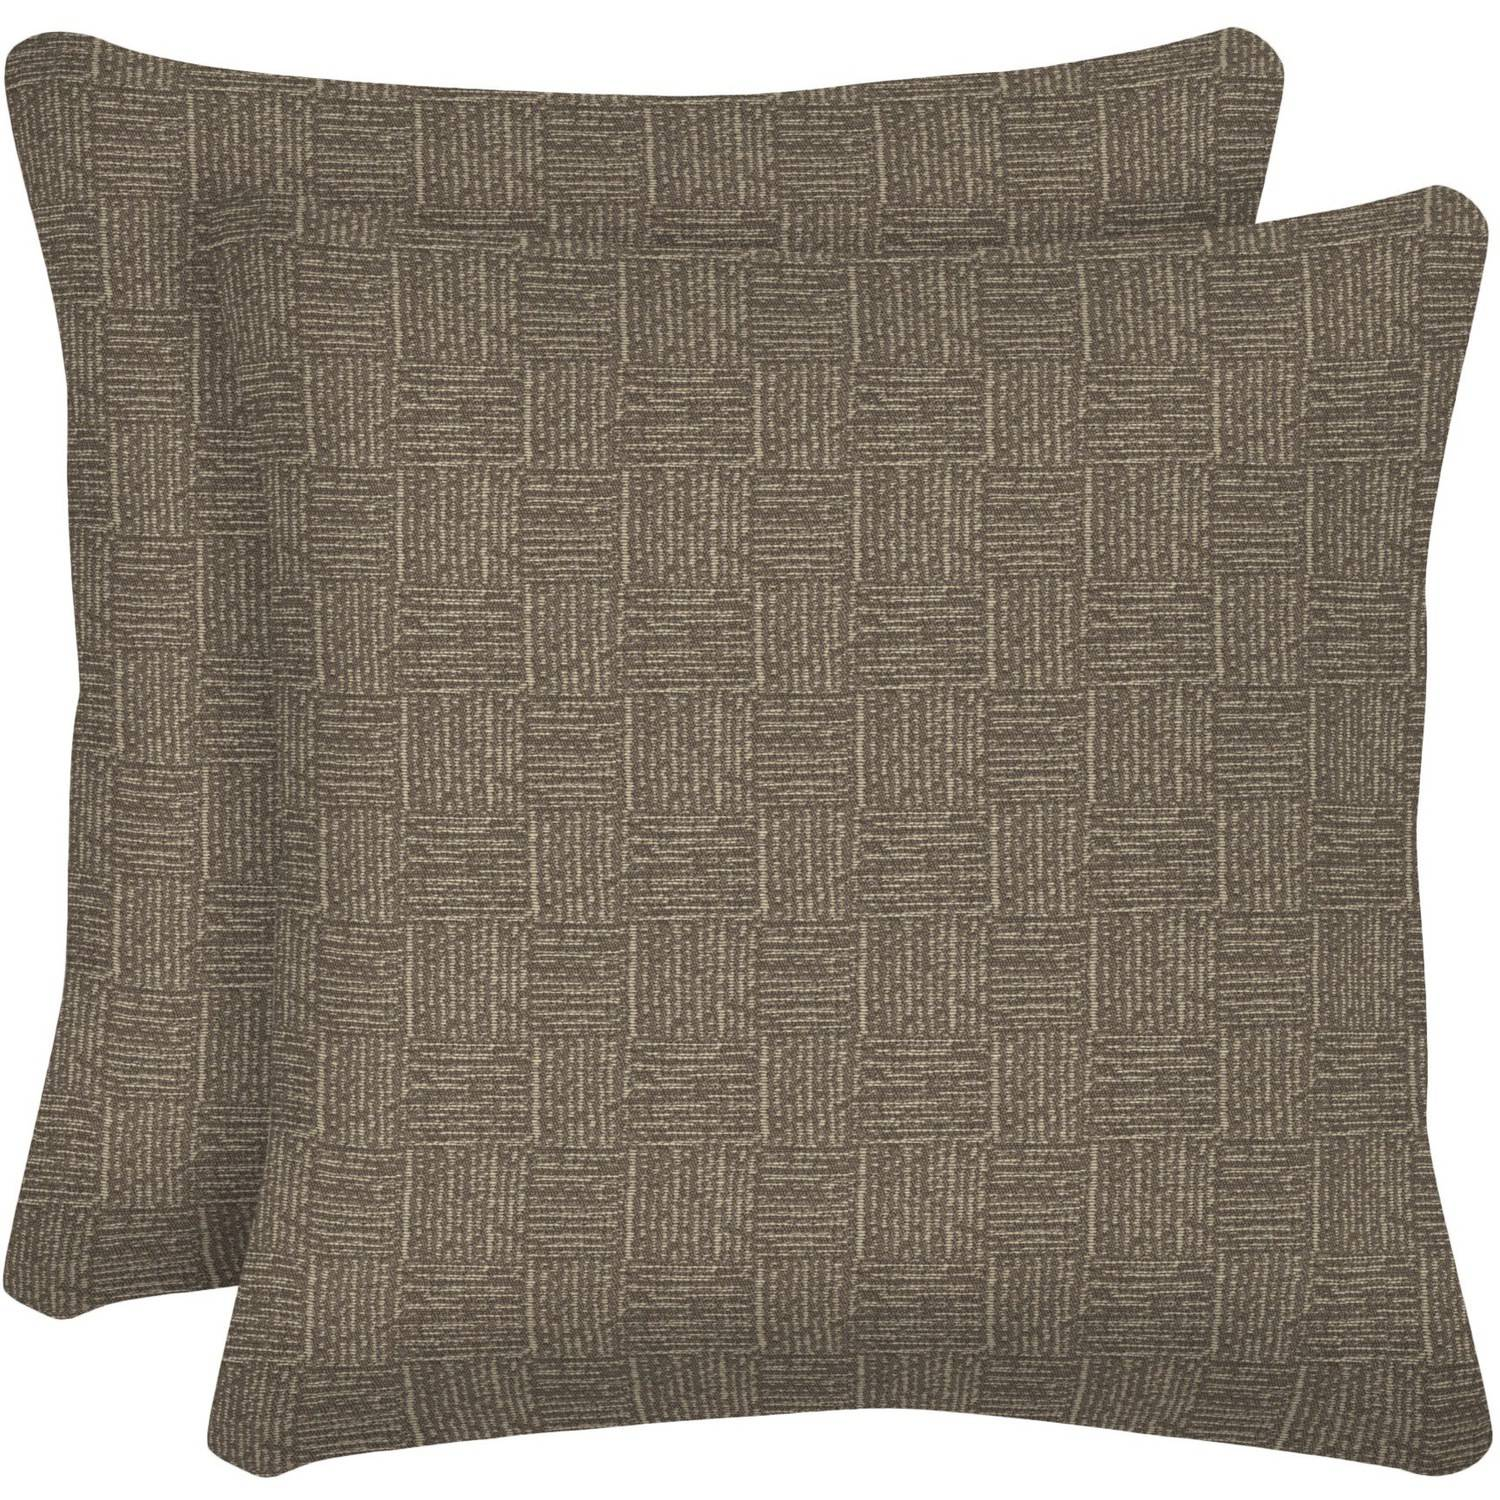 "Arden Outdoors 16"" Square Toss Pillow, Set of 2, Brown Woven"